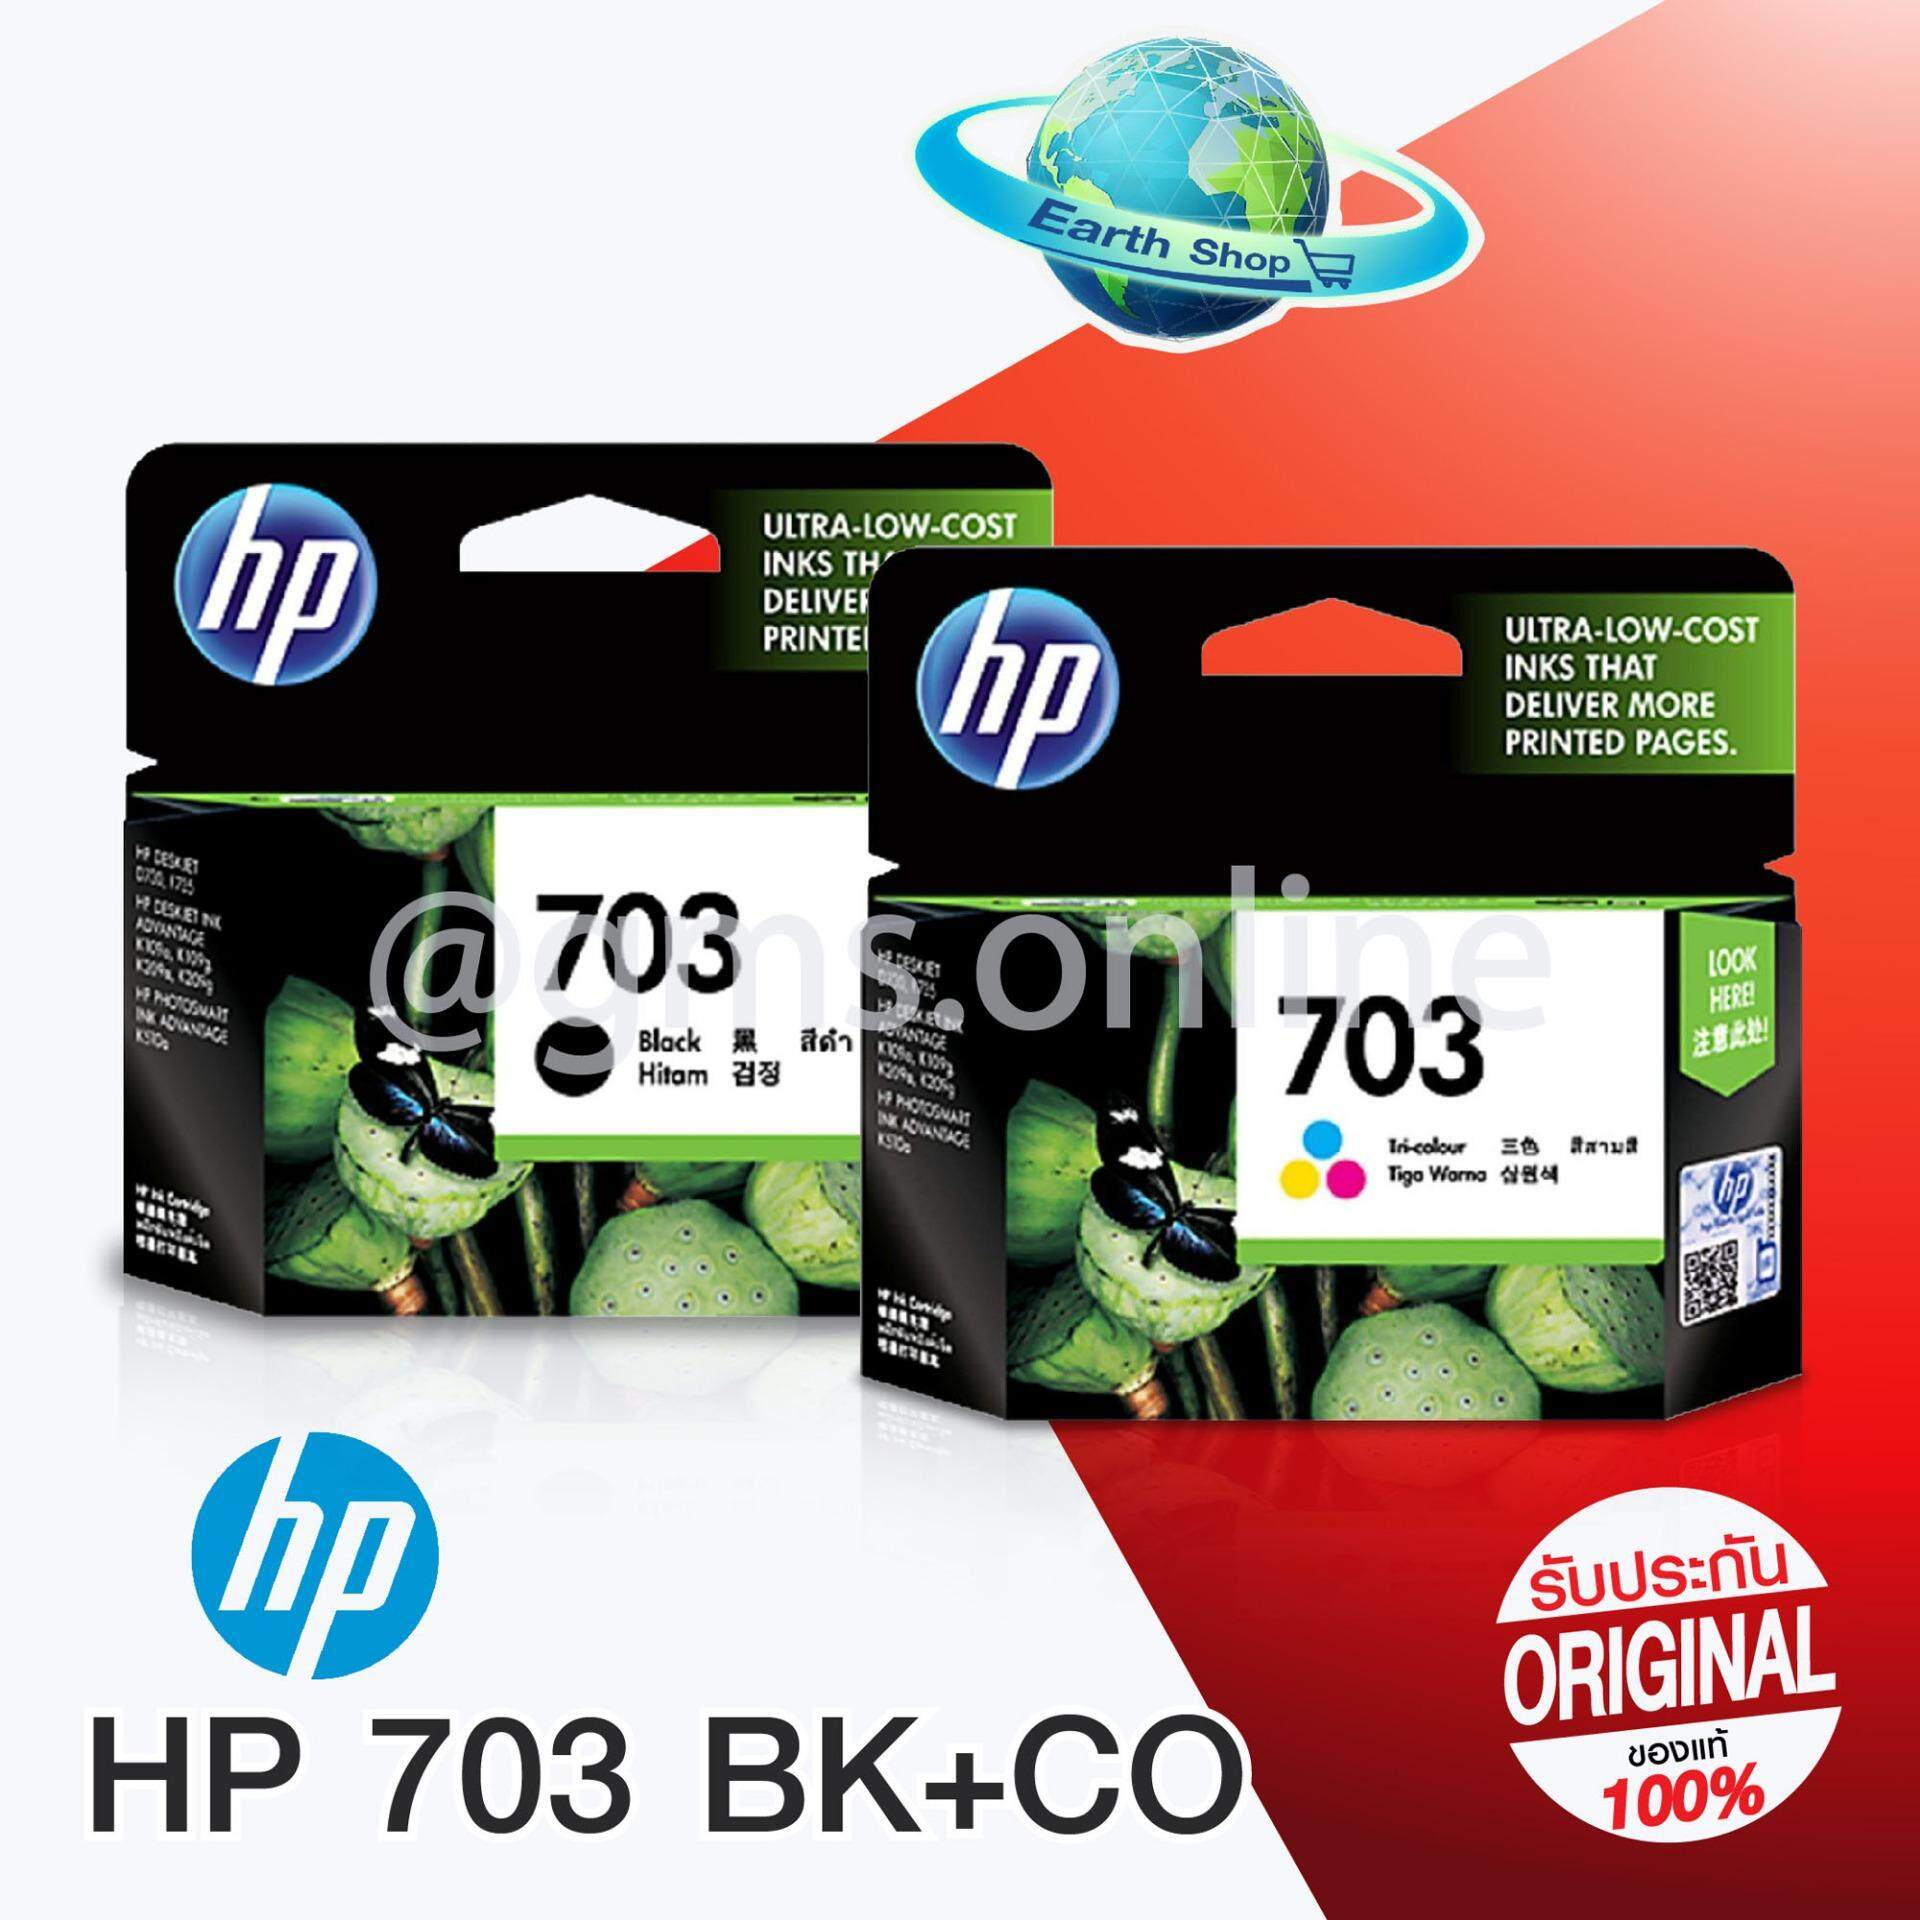 HP 703 Ink CD887AA (สีดำ) + HP 703 Ink CD888AA (สี)HP DESKJETD730,F735 HP DESKJET INK ADVANTAGE K109a,K109g,K209a,K209g HP PHOTOSMART INK ADVANTAGE K510a